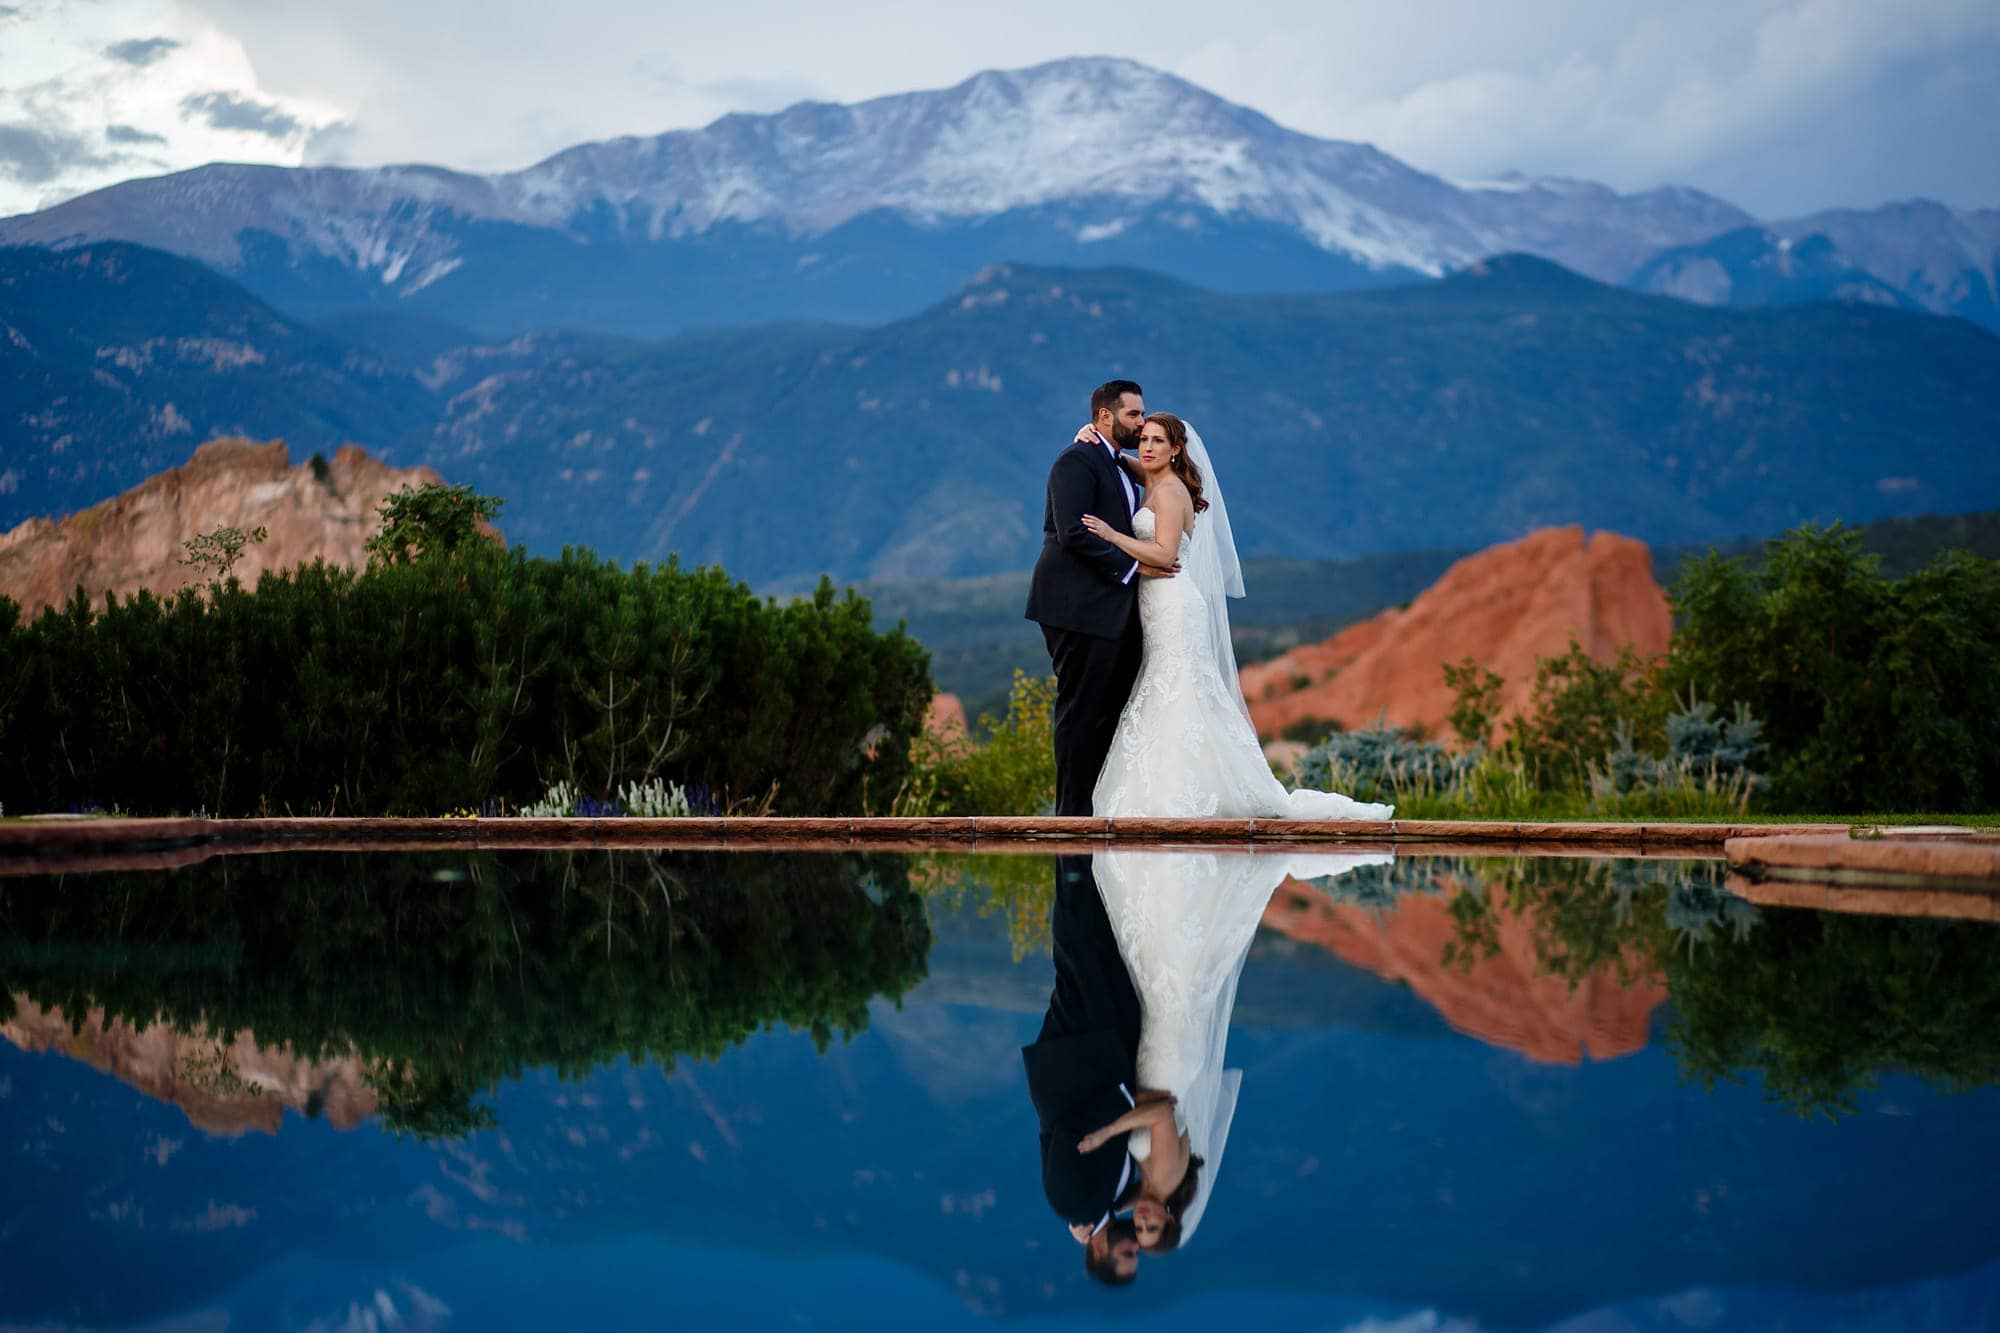 Garden of the Gods Club wedding | Colorado Springs | Devan & Joshua